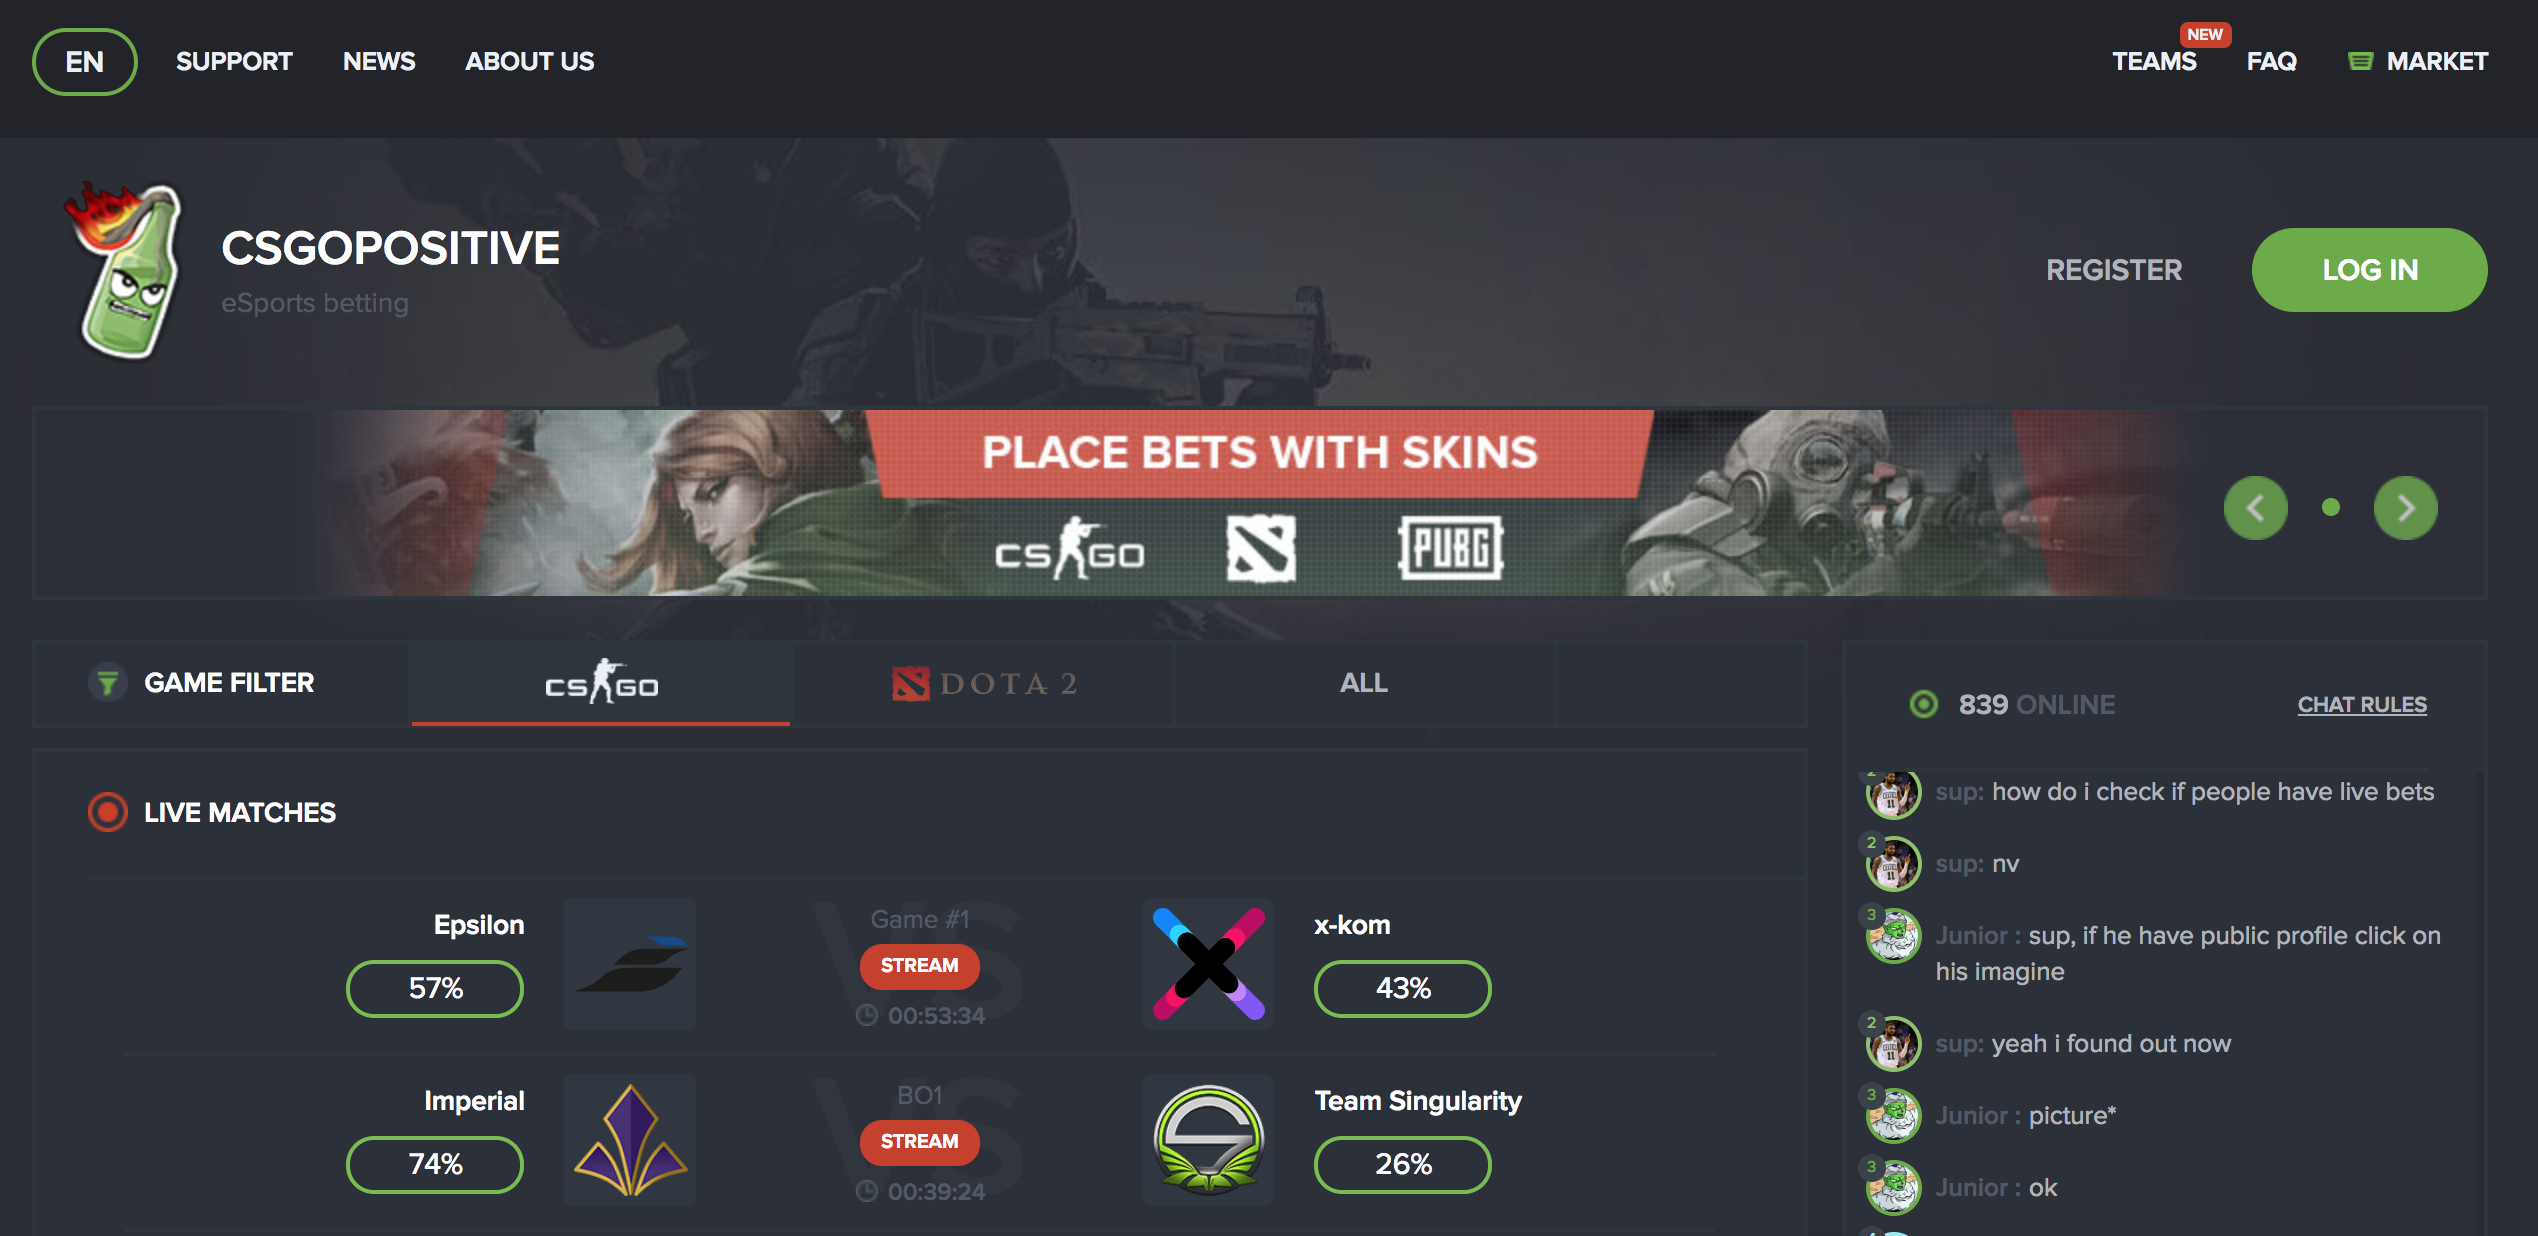 Ntn csgo betting 888 betting rules in blackjack